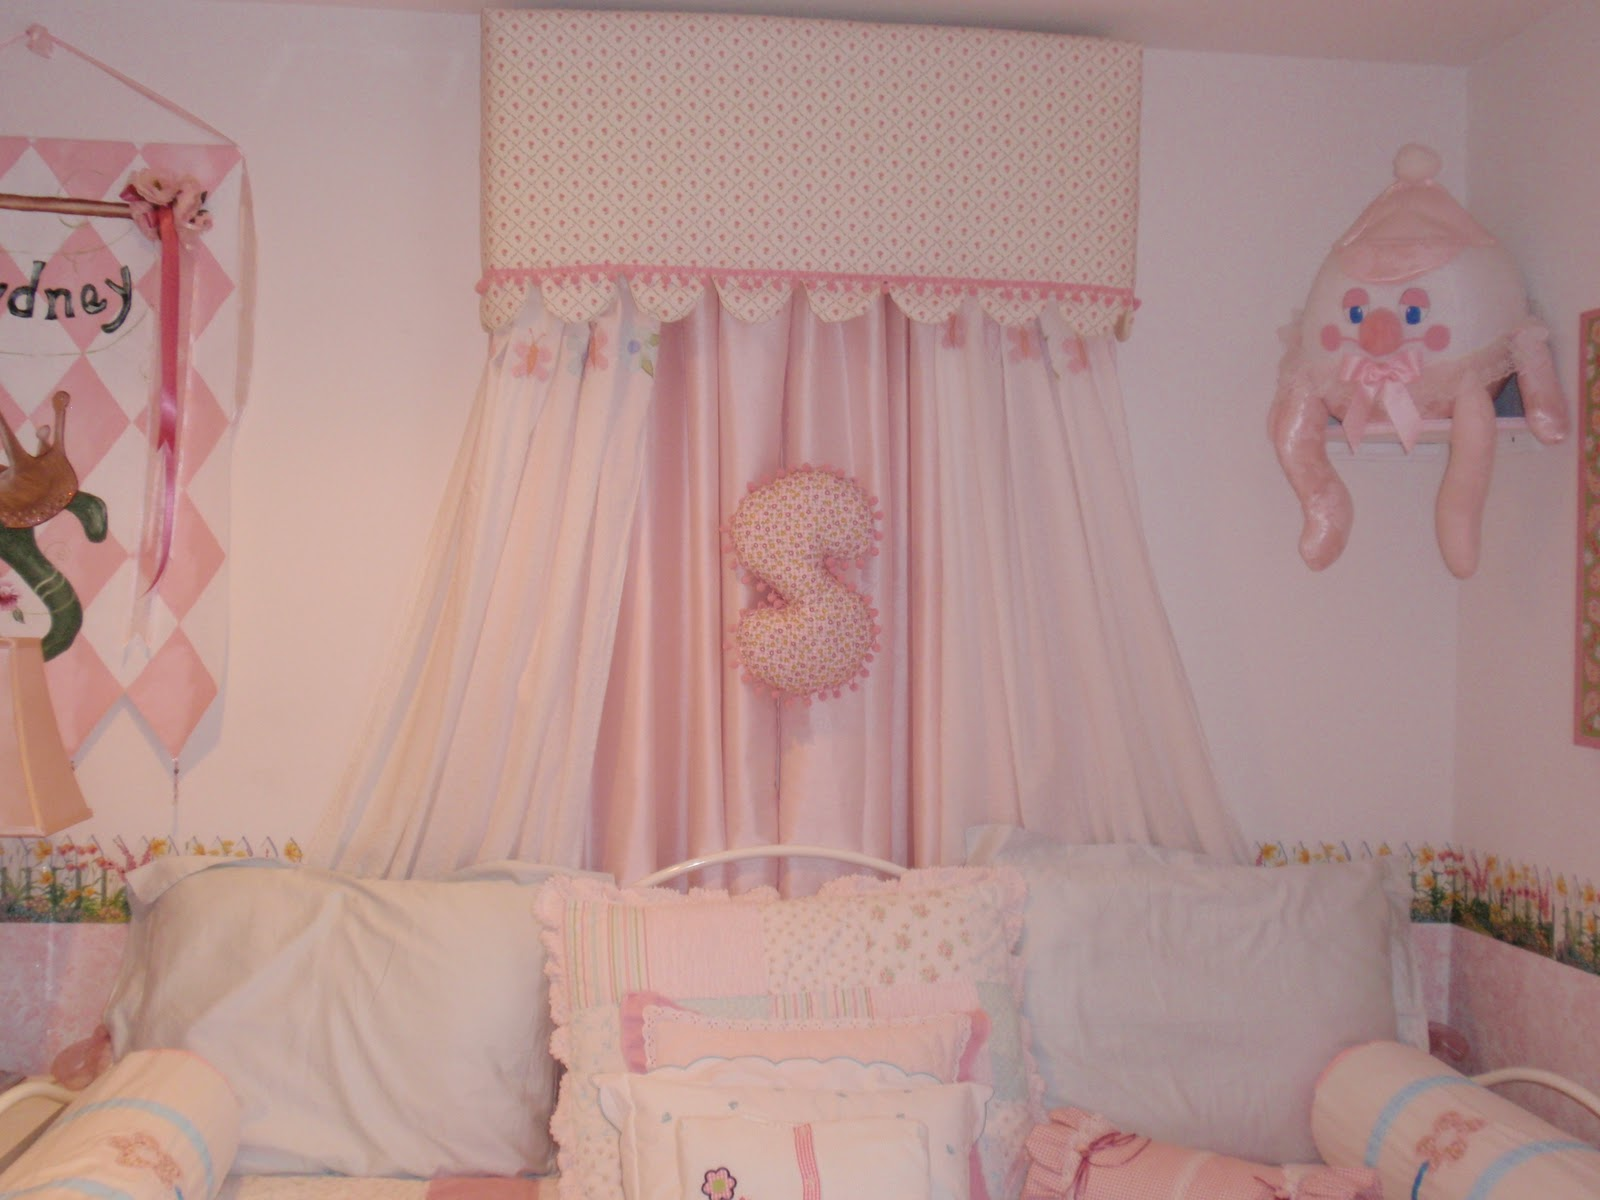 Bedroom Inspirations Diy By Design Inspirations For A 10 Year Old Girl S Room